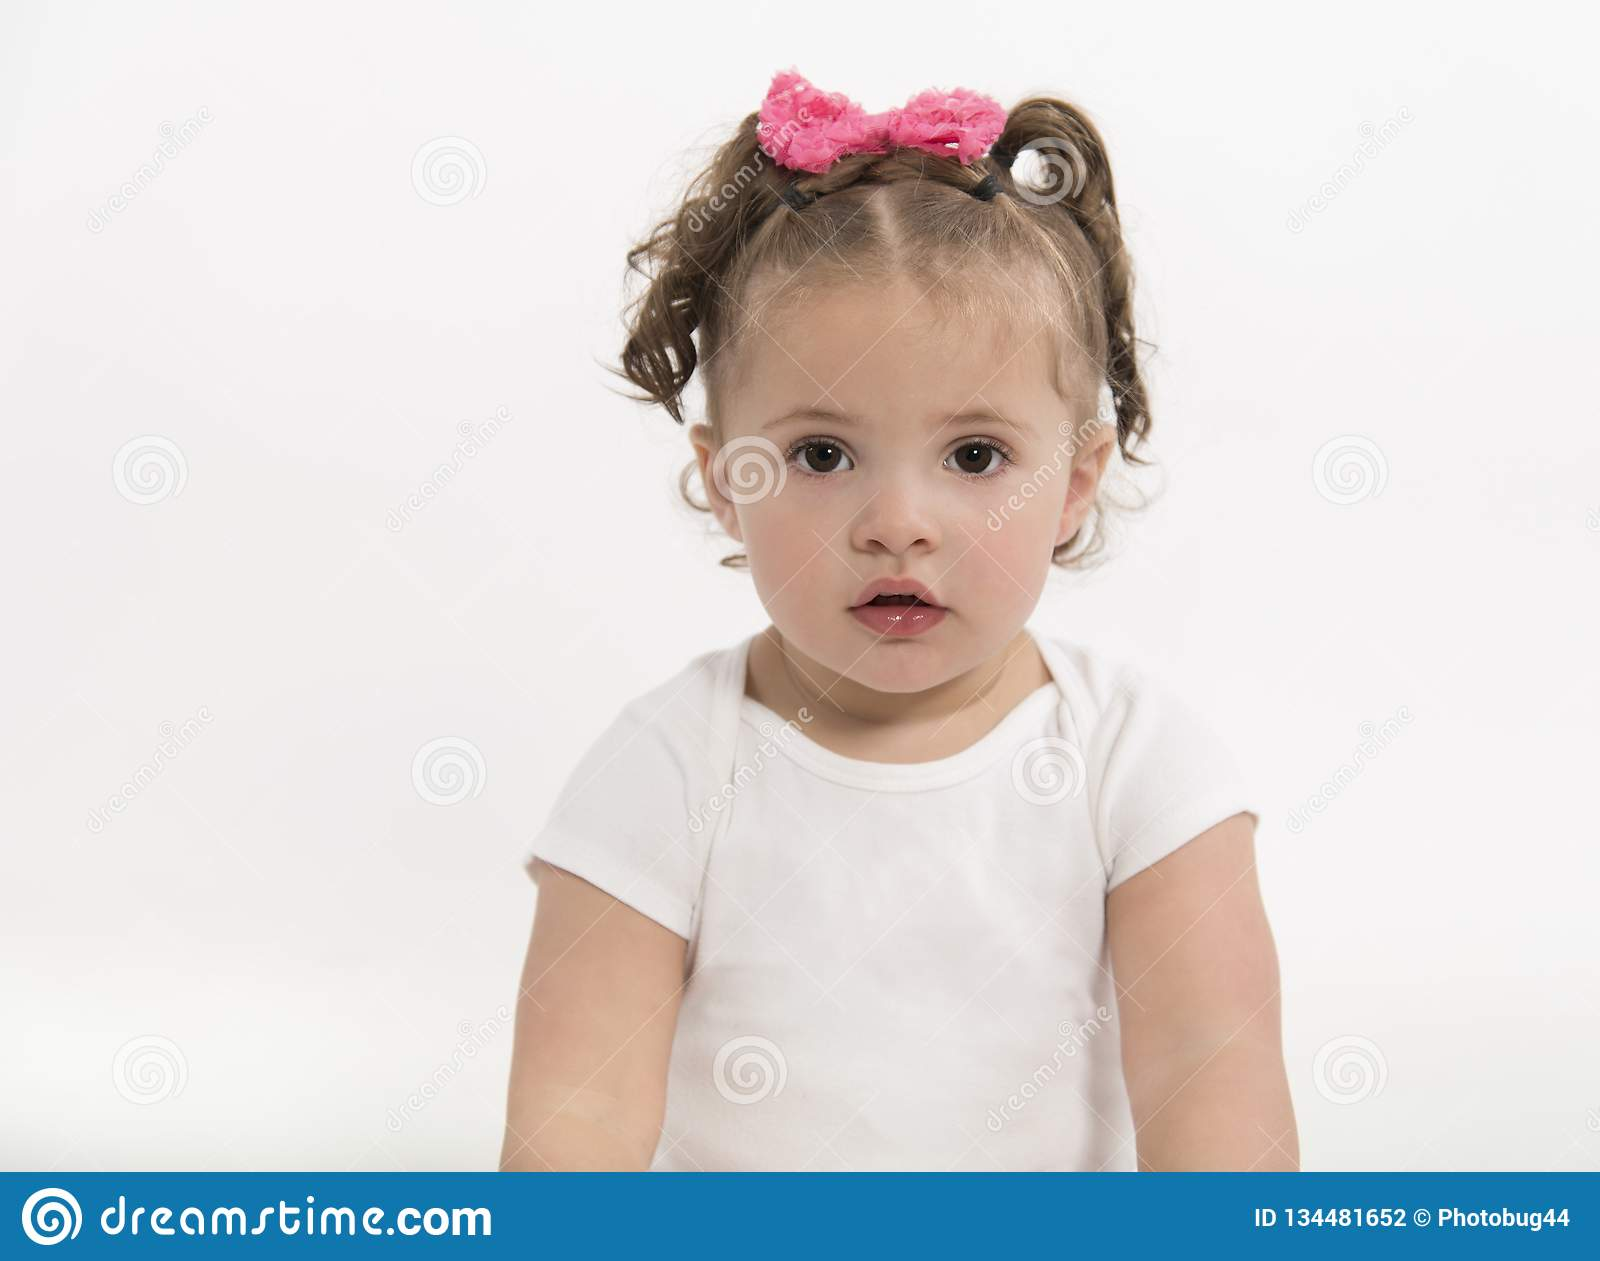 Adorable, Little Girl With Big Brown Eyes And Serious Expression